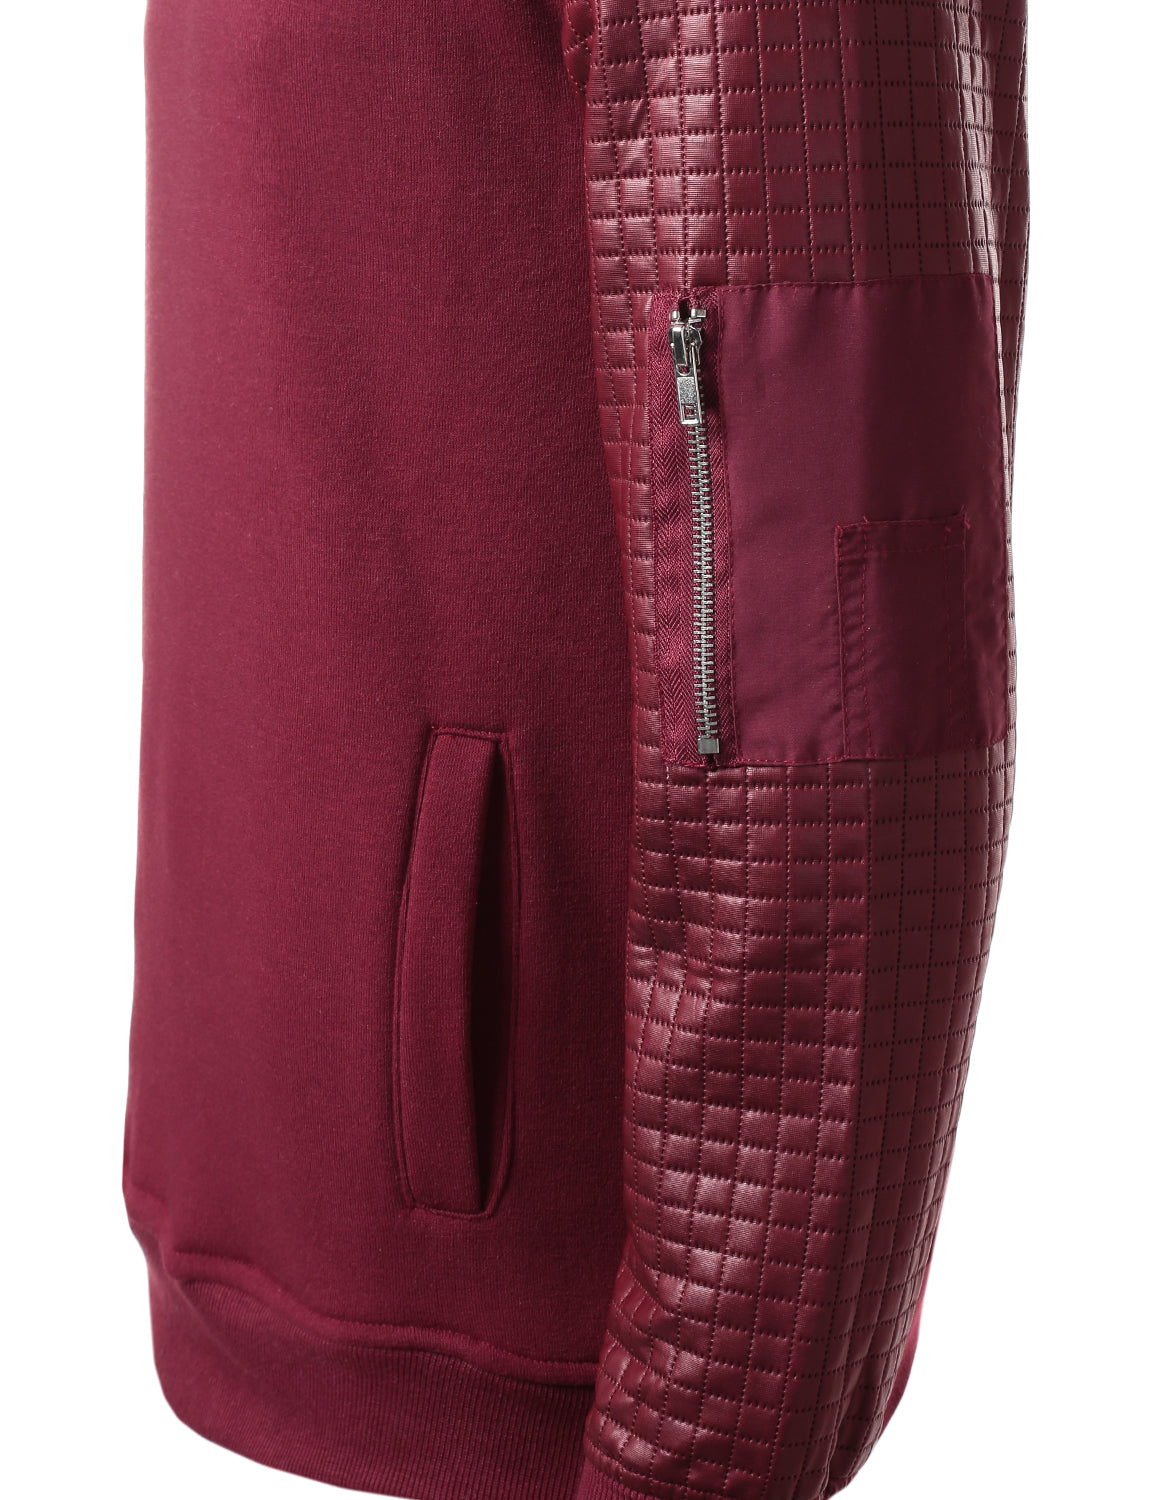 BURGUNDY - Quilted PU Sleeves Sweatshirt BURGUNDY XLARGE